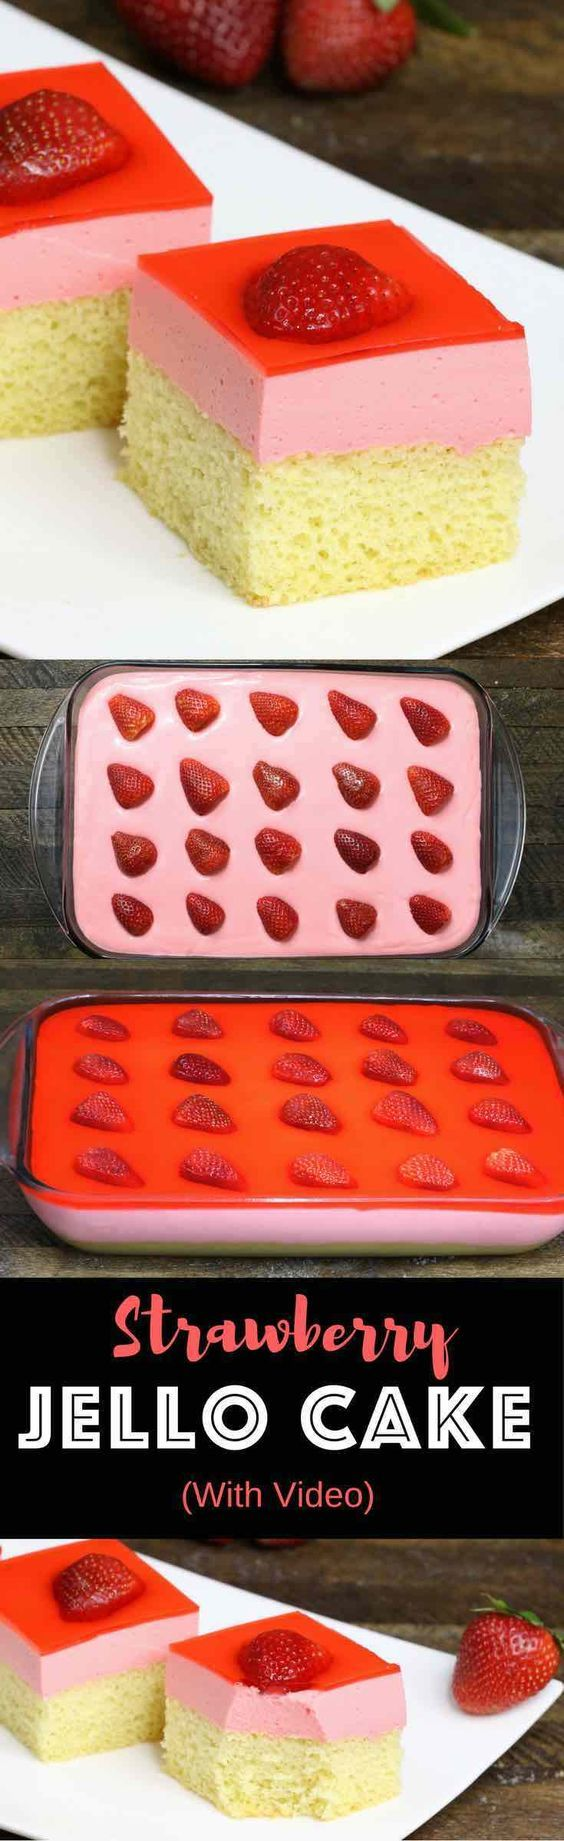 Wow your guests with this amazing Strawberry Jello Cake! A delicious 3-layer dessert to make for birthday parties or special occasions.